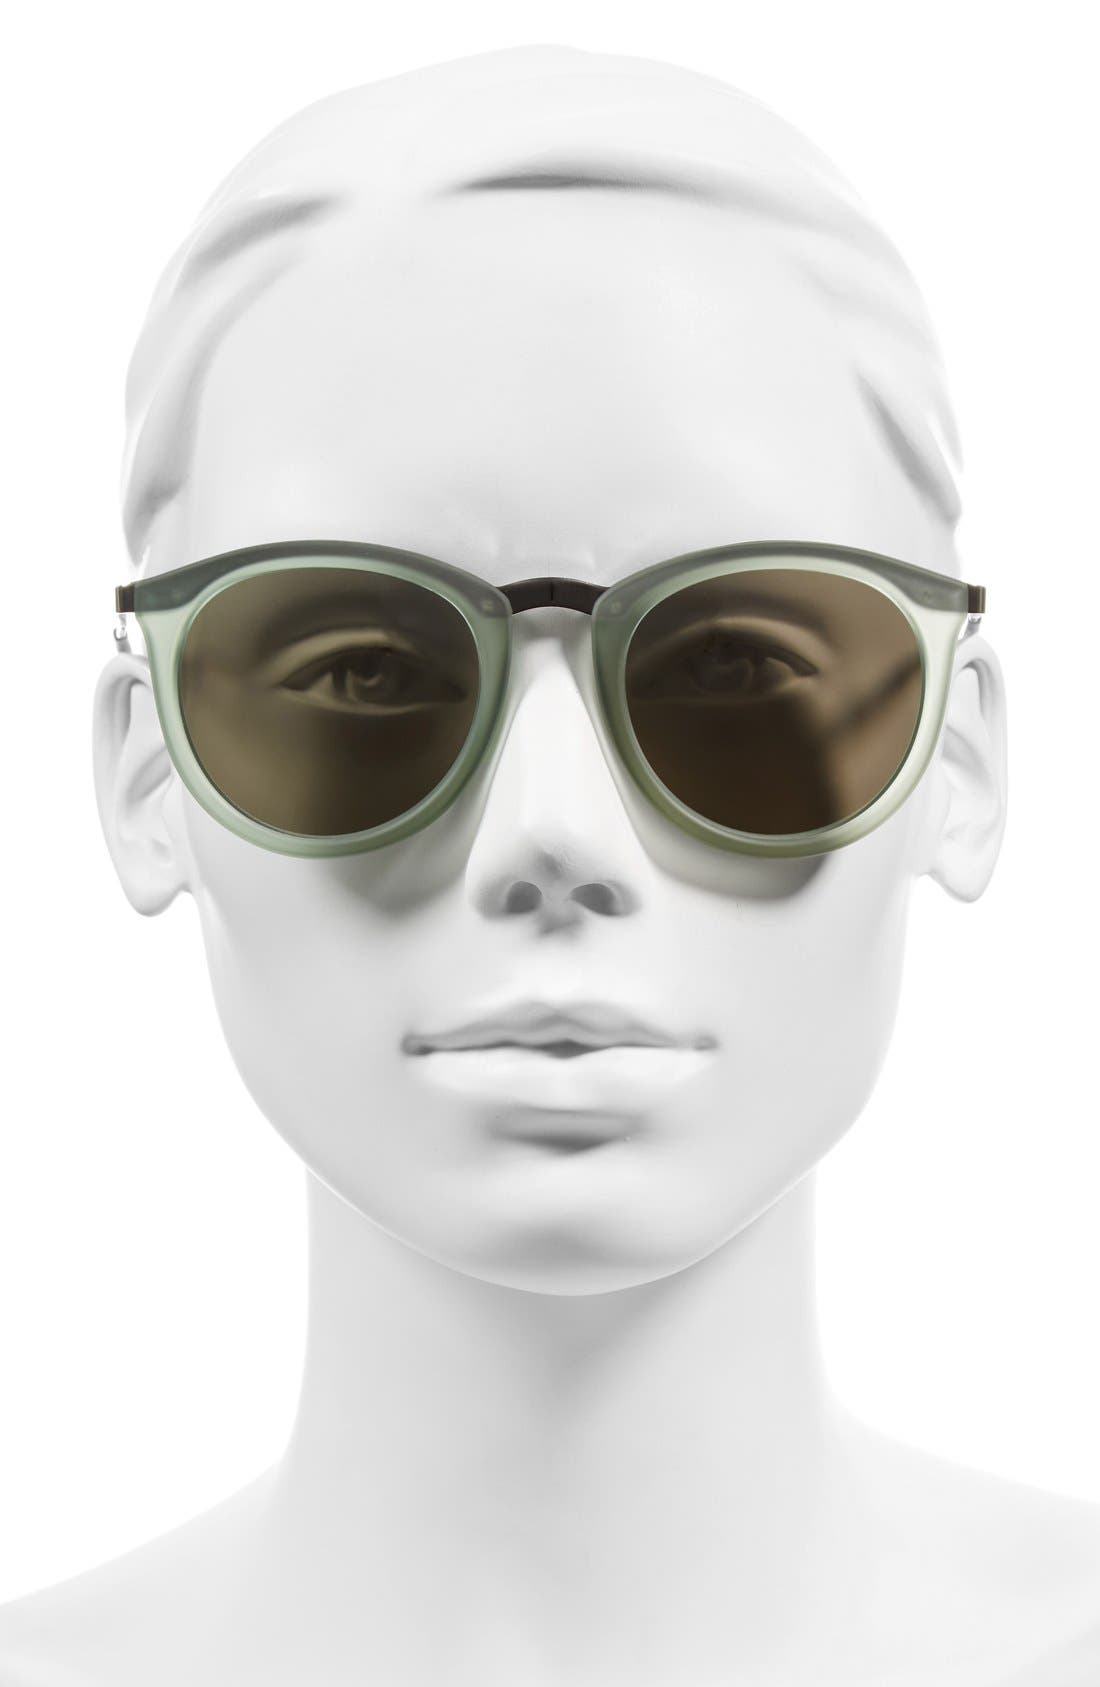 No Smirking 50mm Sunglasses,                             Alternate thumbnail 2, color,                             Olive Rubber/ Silver